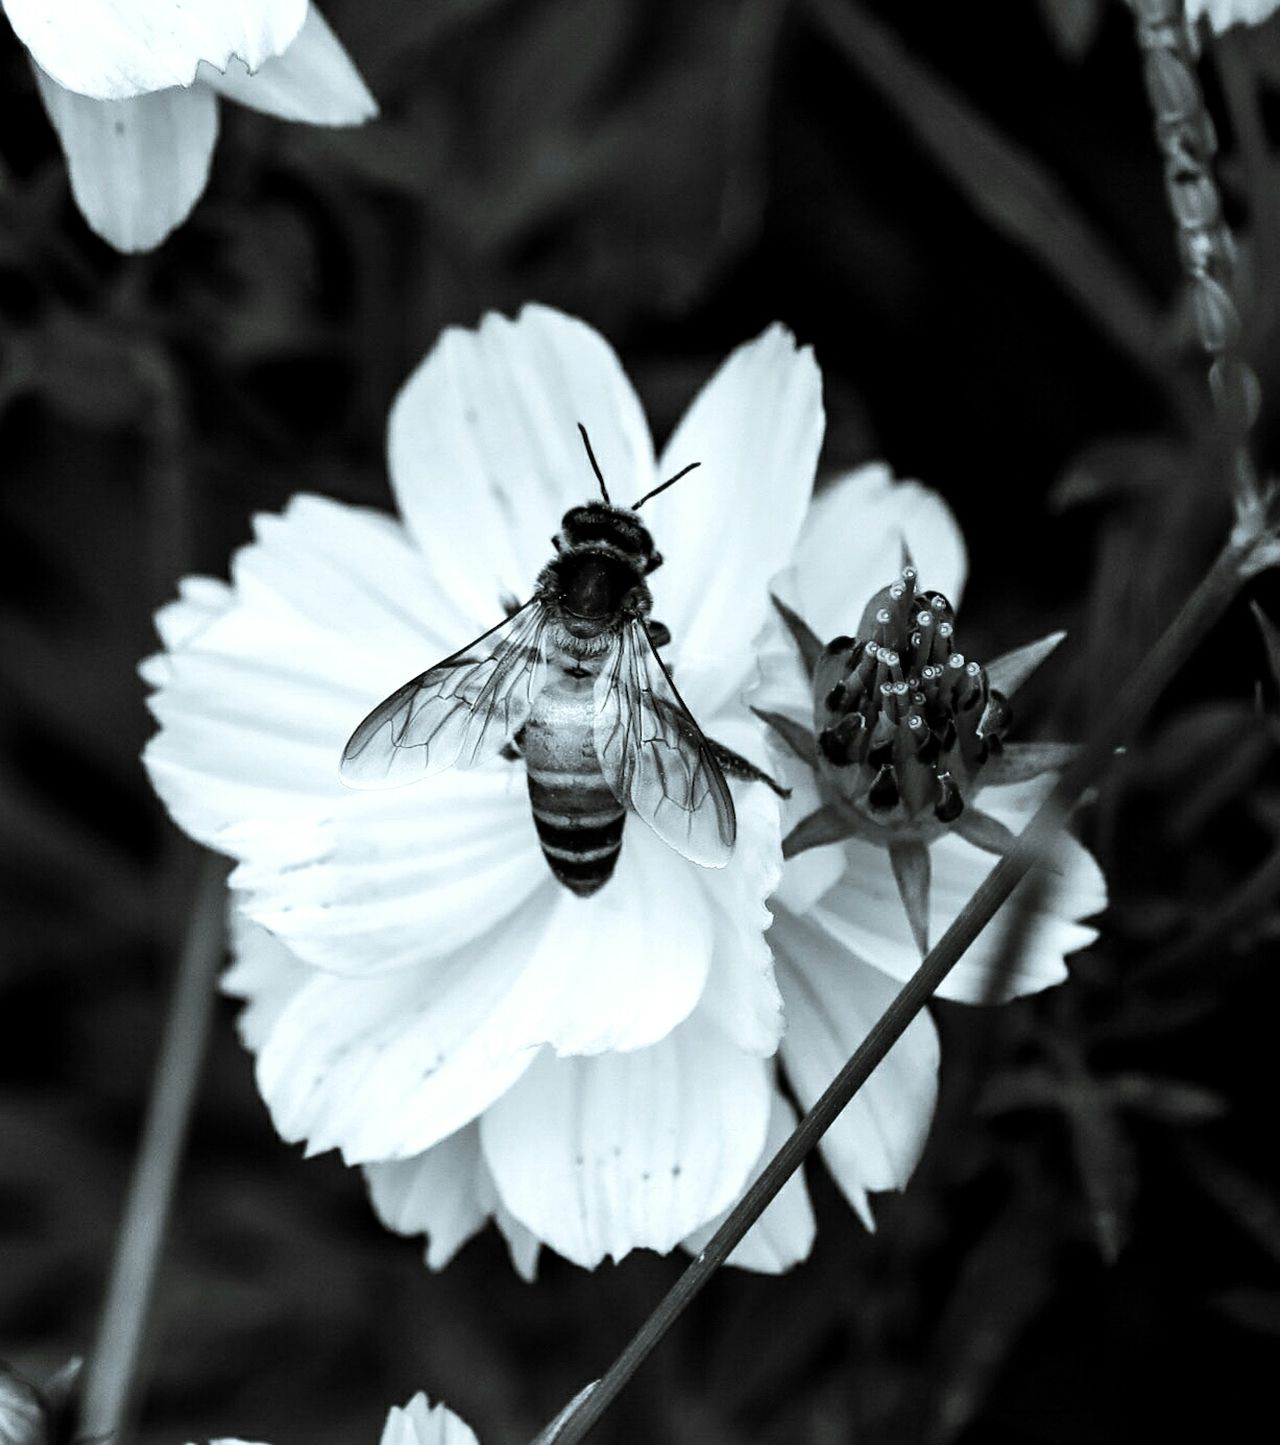 Flower Head Perching Focus On Foreground Flower Animal Wildlife Insect Outdoors Plant Animals In The Wild Animal Themes One Animal Nature Close-up No People Fragility Canon 750d Great Outdoors-EyeEm Awards 2017 Honeybee On Flower Bee Bee On The Flower The Great Outdoors - 2017 EyeEm Awards Monochrome Photography Monochrome